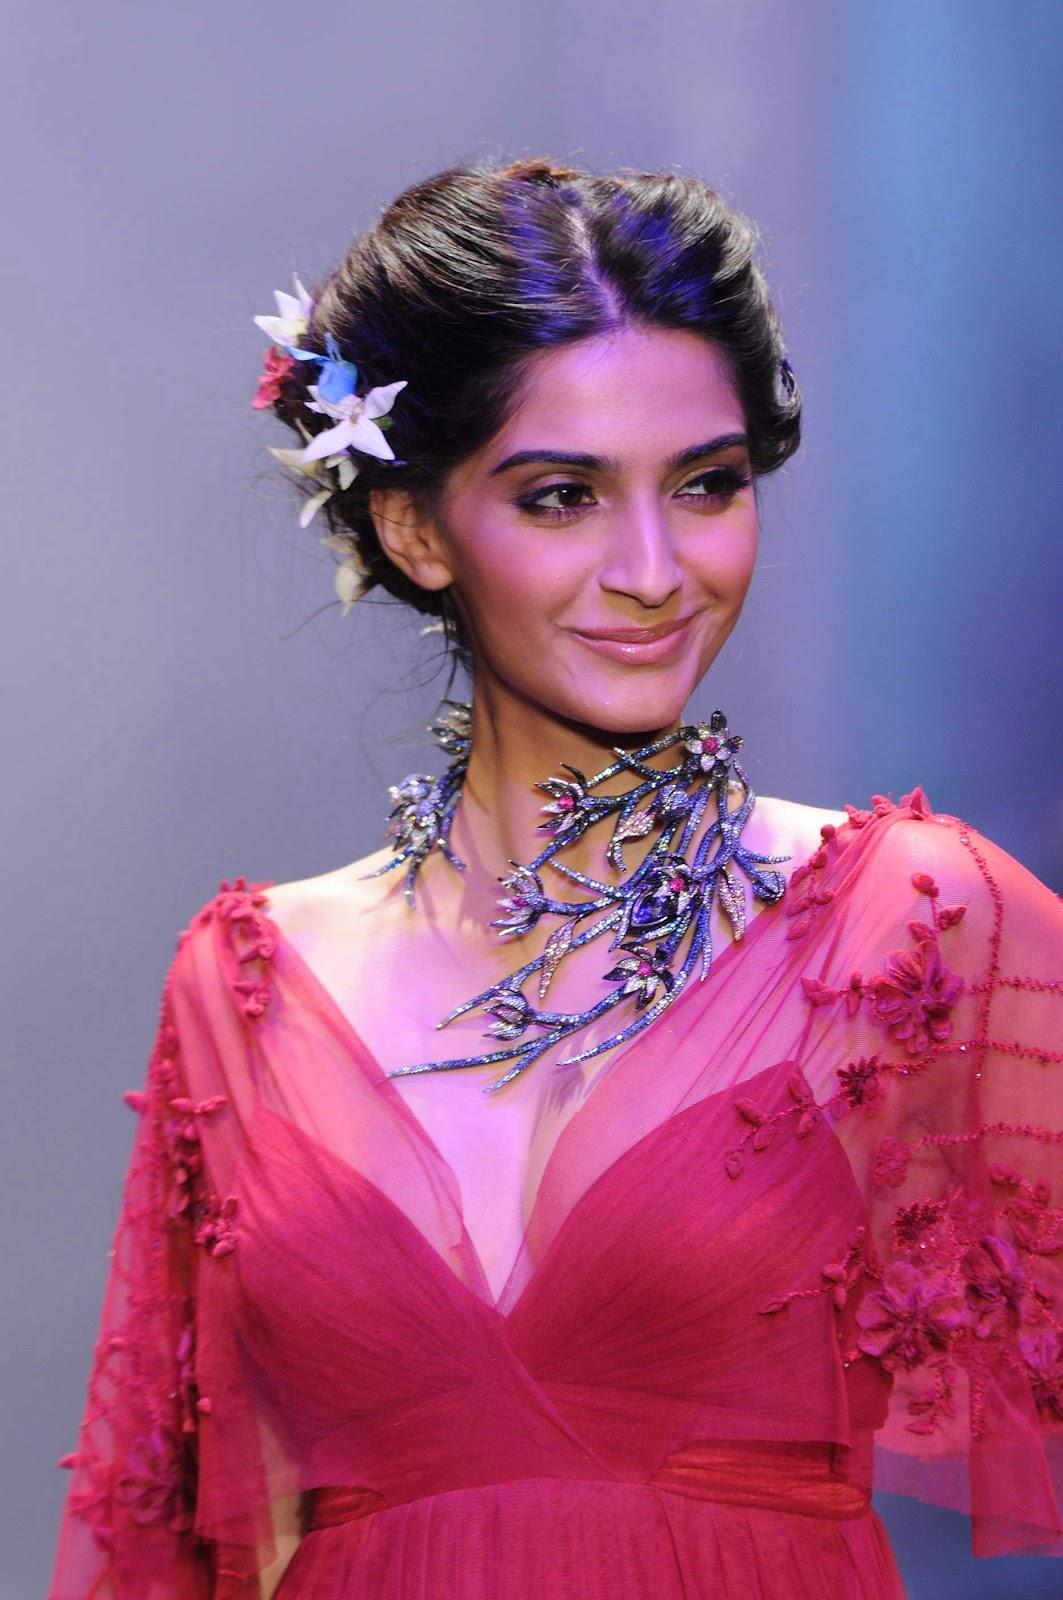 Mothers Day Hd Wallpaper Sonam Kapoor On A Ramp Beautifully Dressed